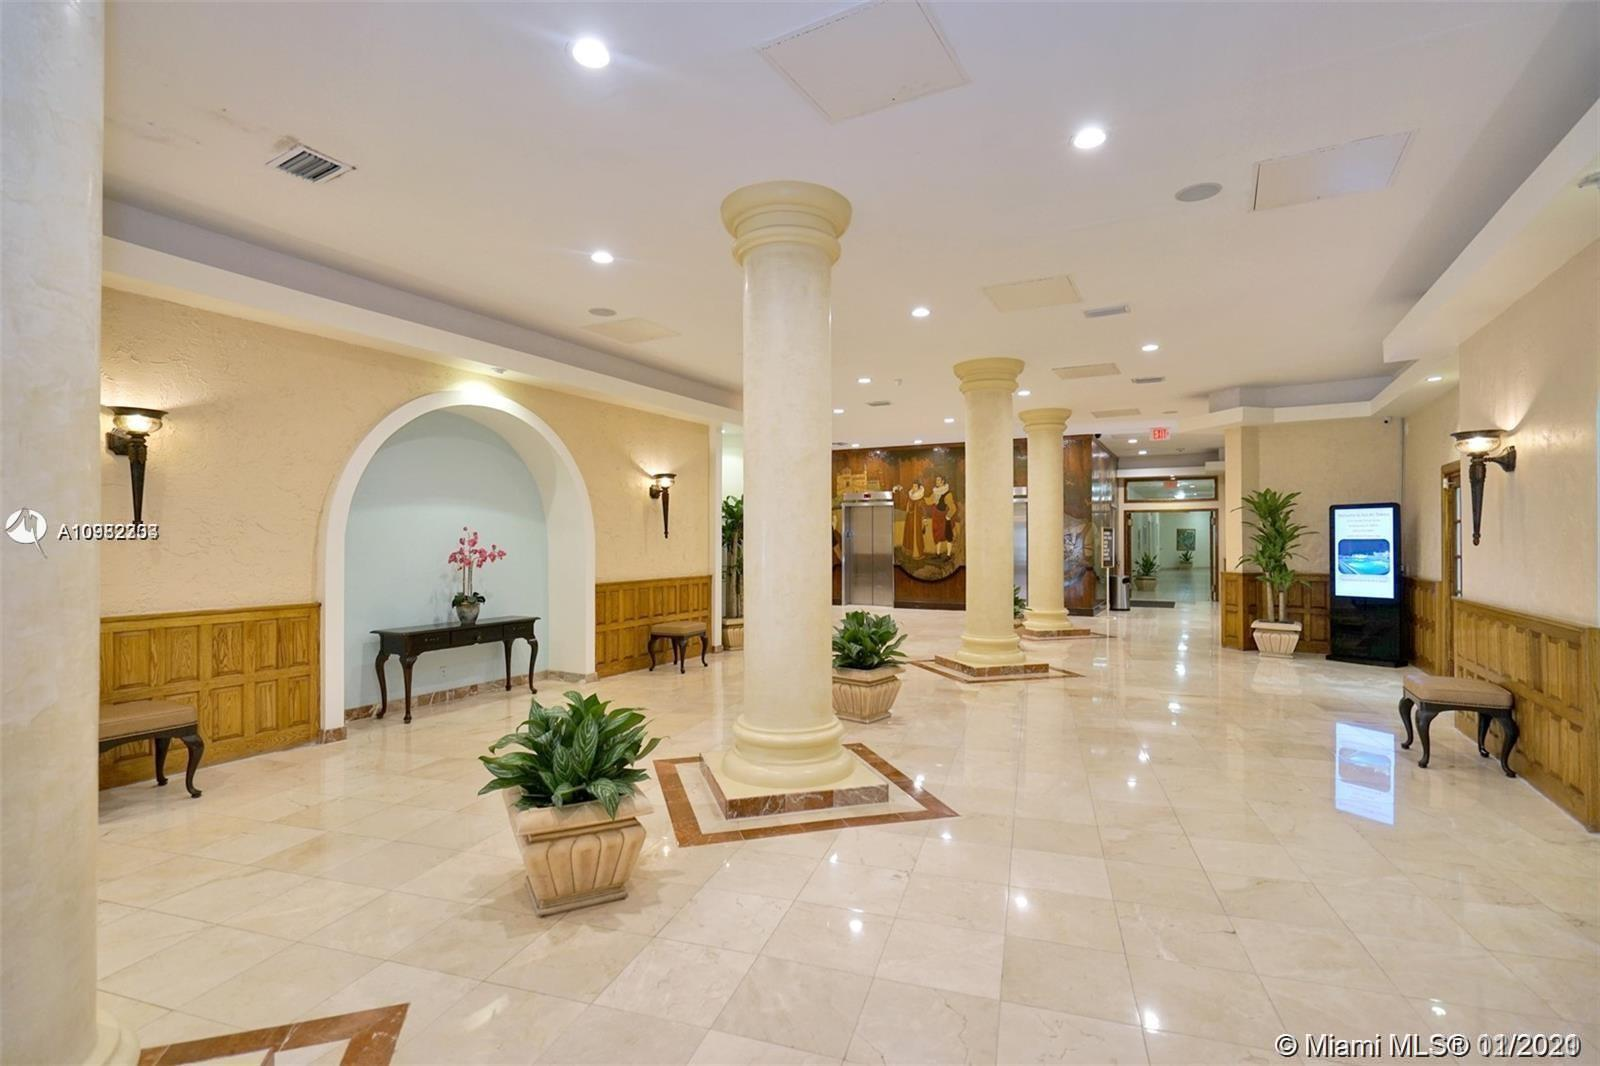 Photo of 3725 Ocean Dr #1504, Hollywood, Florida, 33019 - Heated community pool.